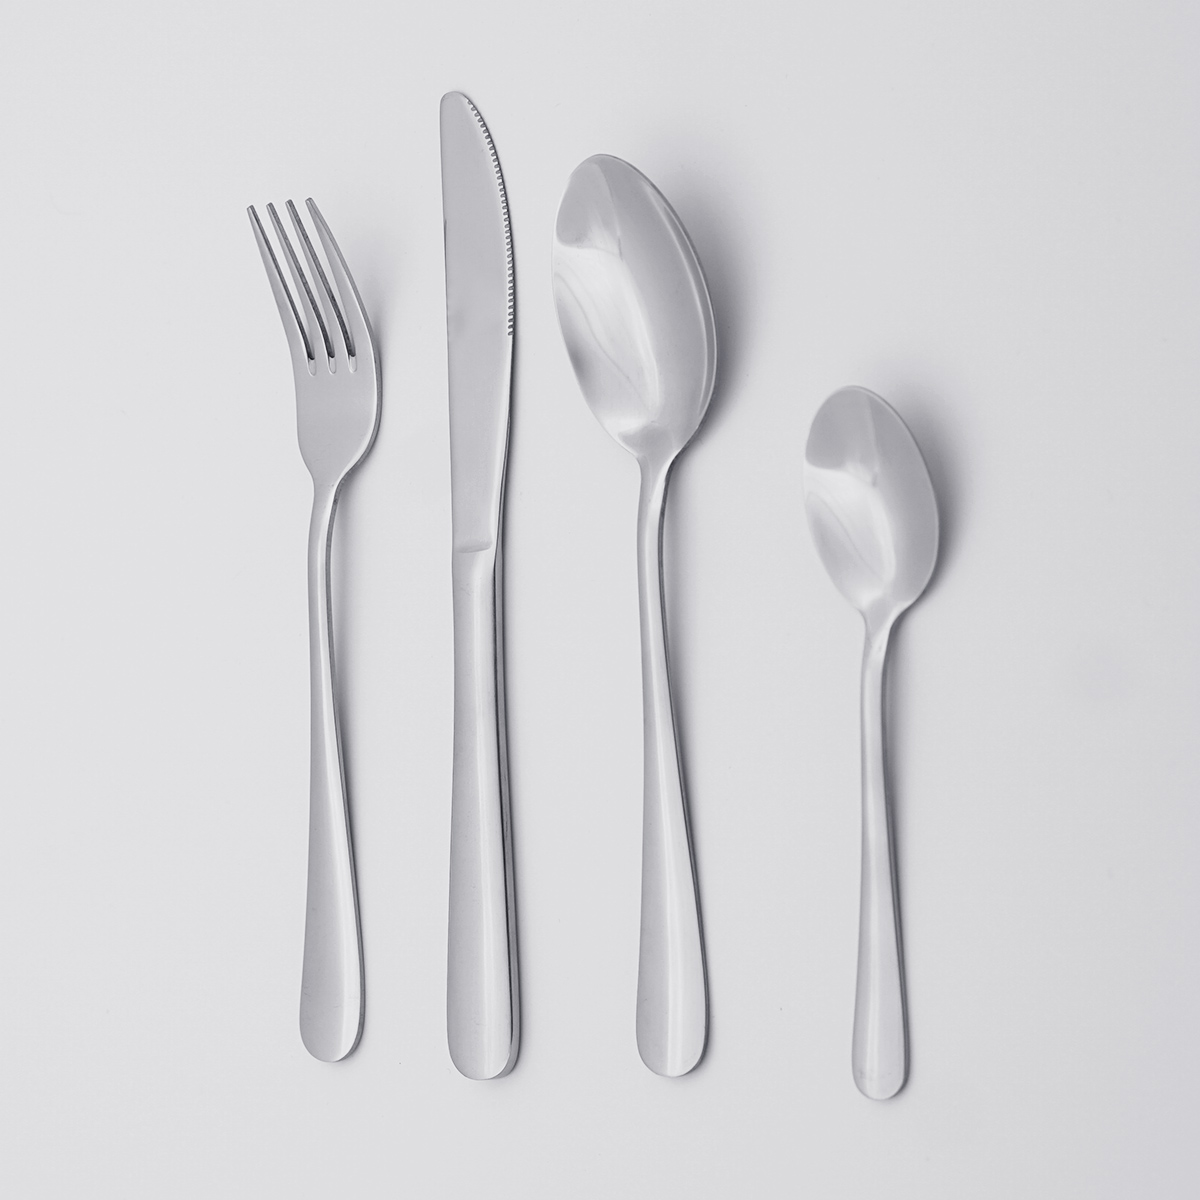 Wholesale Classic Design Low MOQ Cheap Price Flatware Set Silverware Stainless Steel Cutlery Set